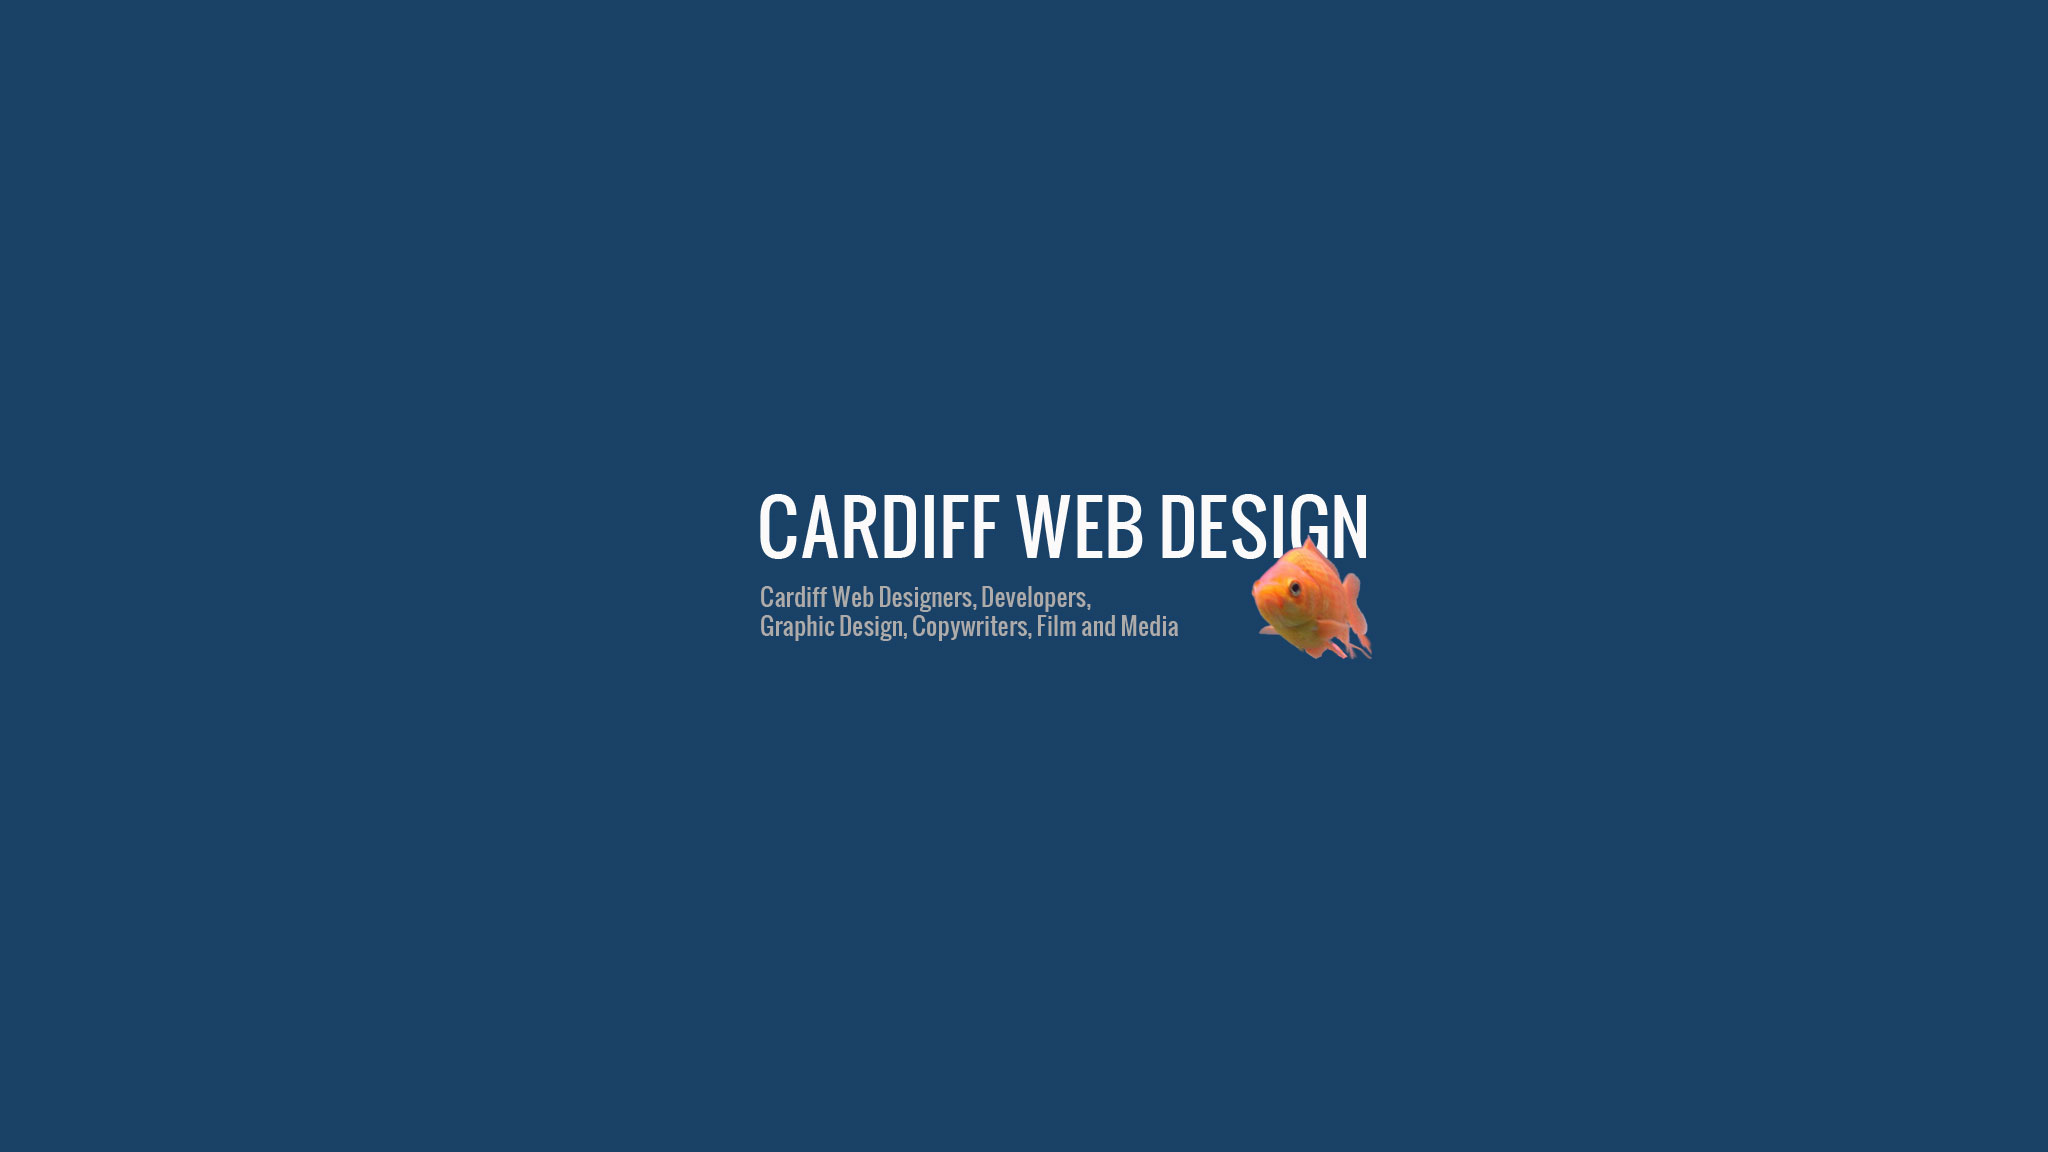 Cardiff Web Design Ltd – Animated Promotional Video